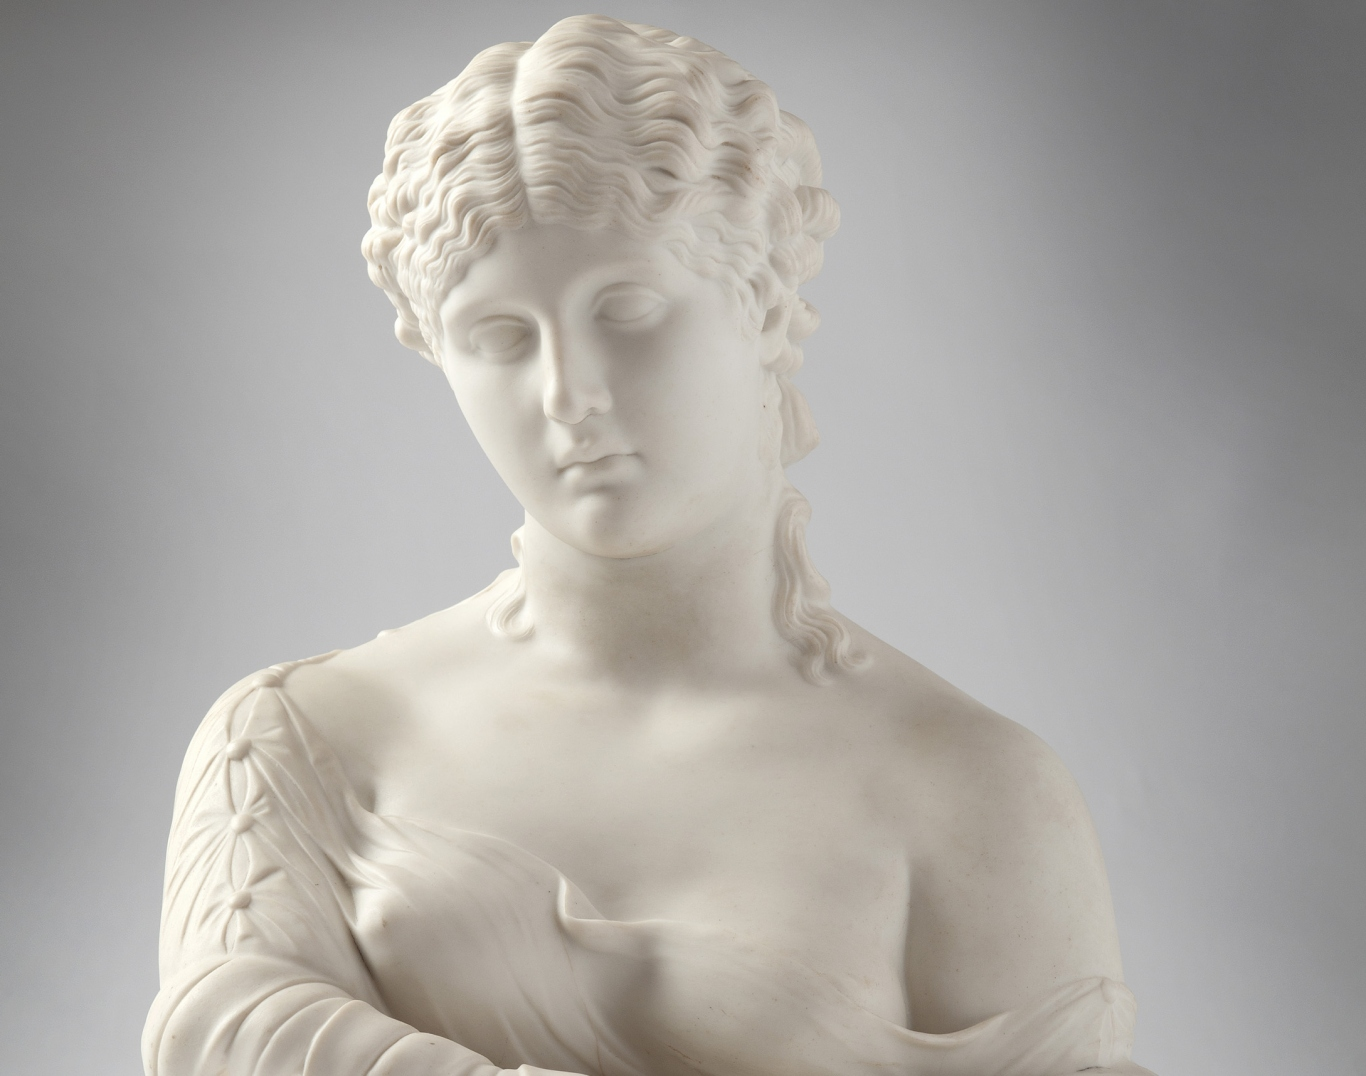 Head and shoulders of white bust of young woman.